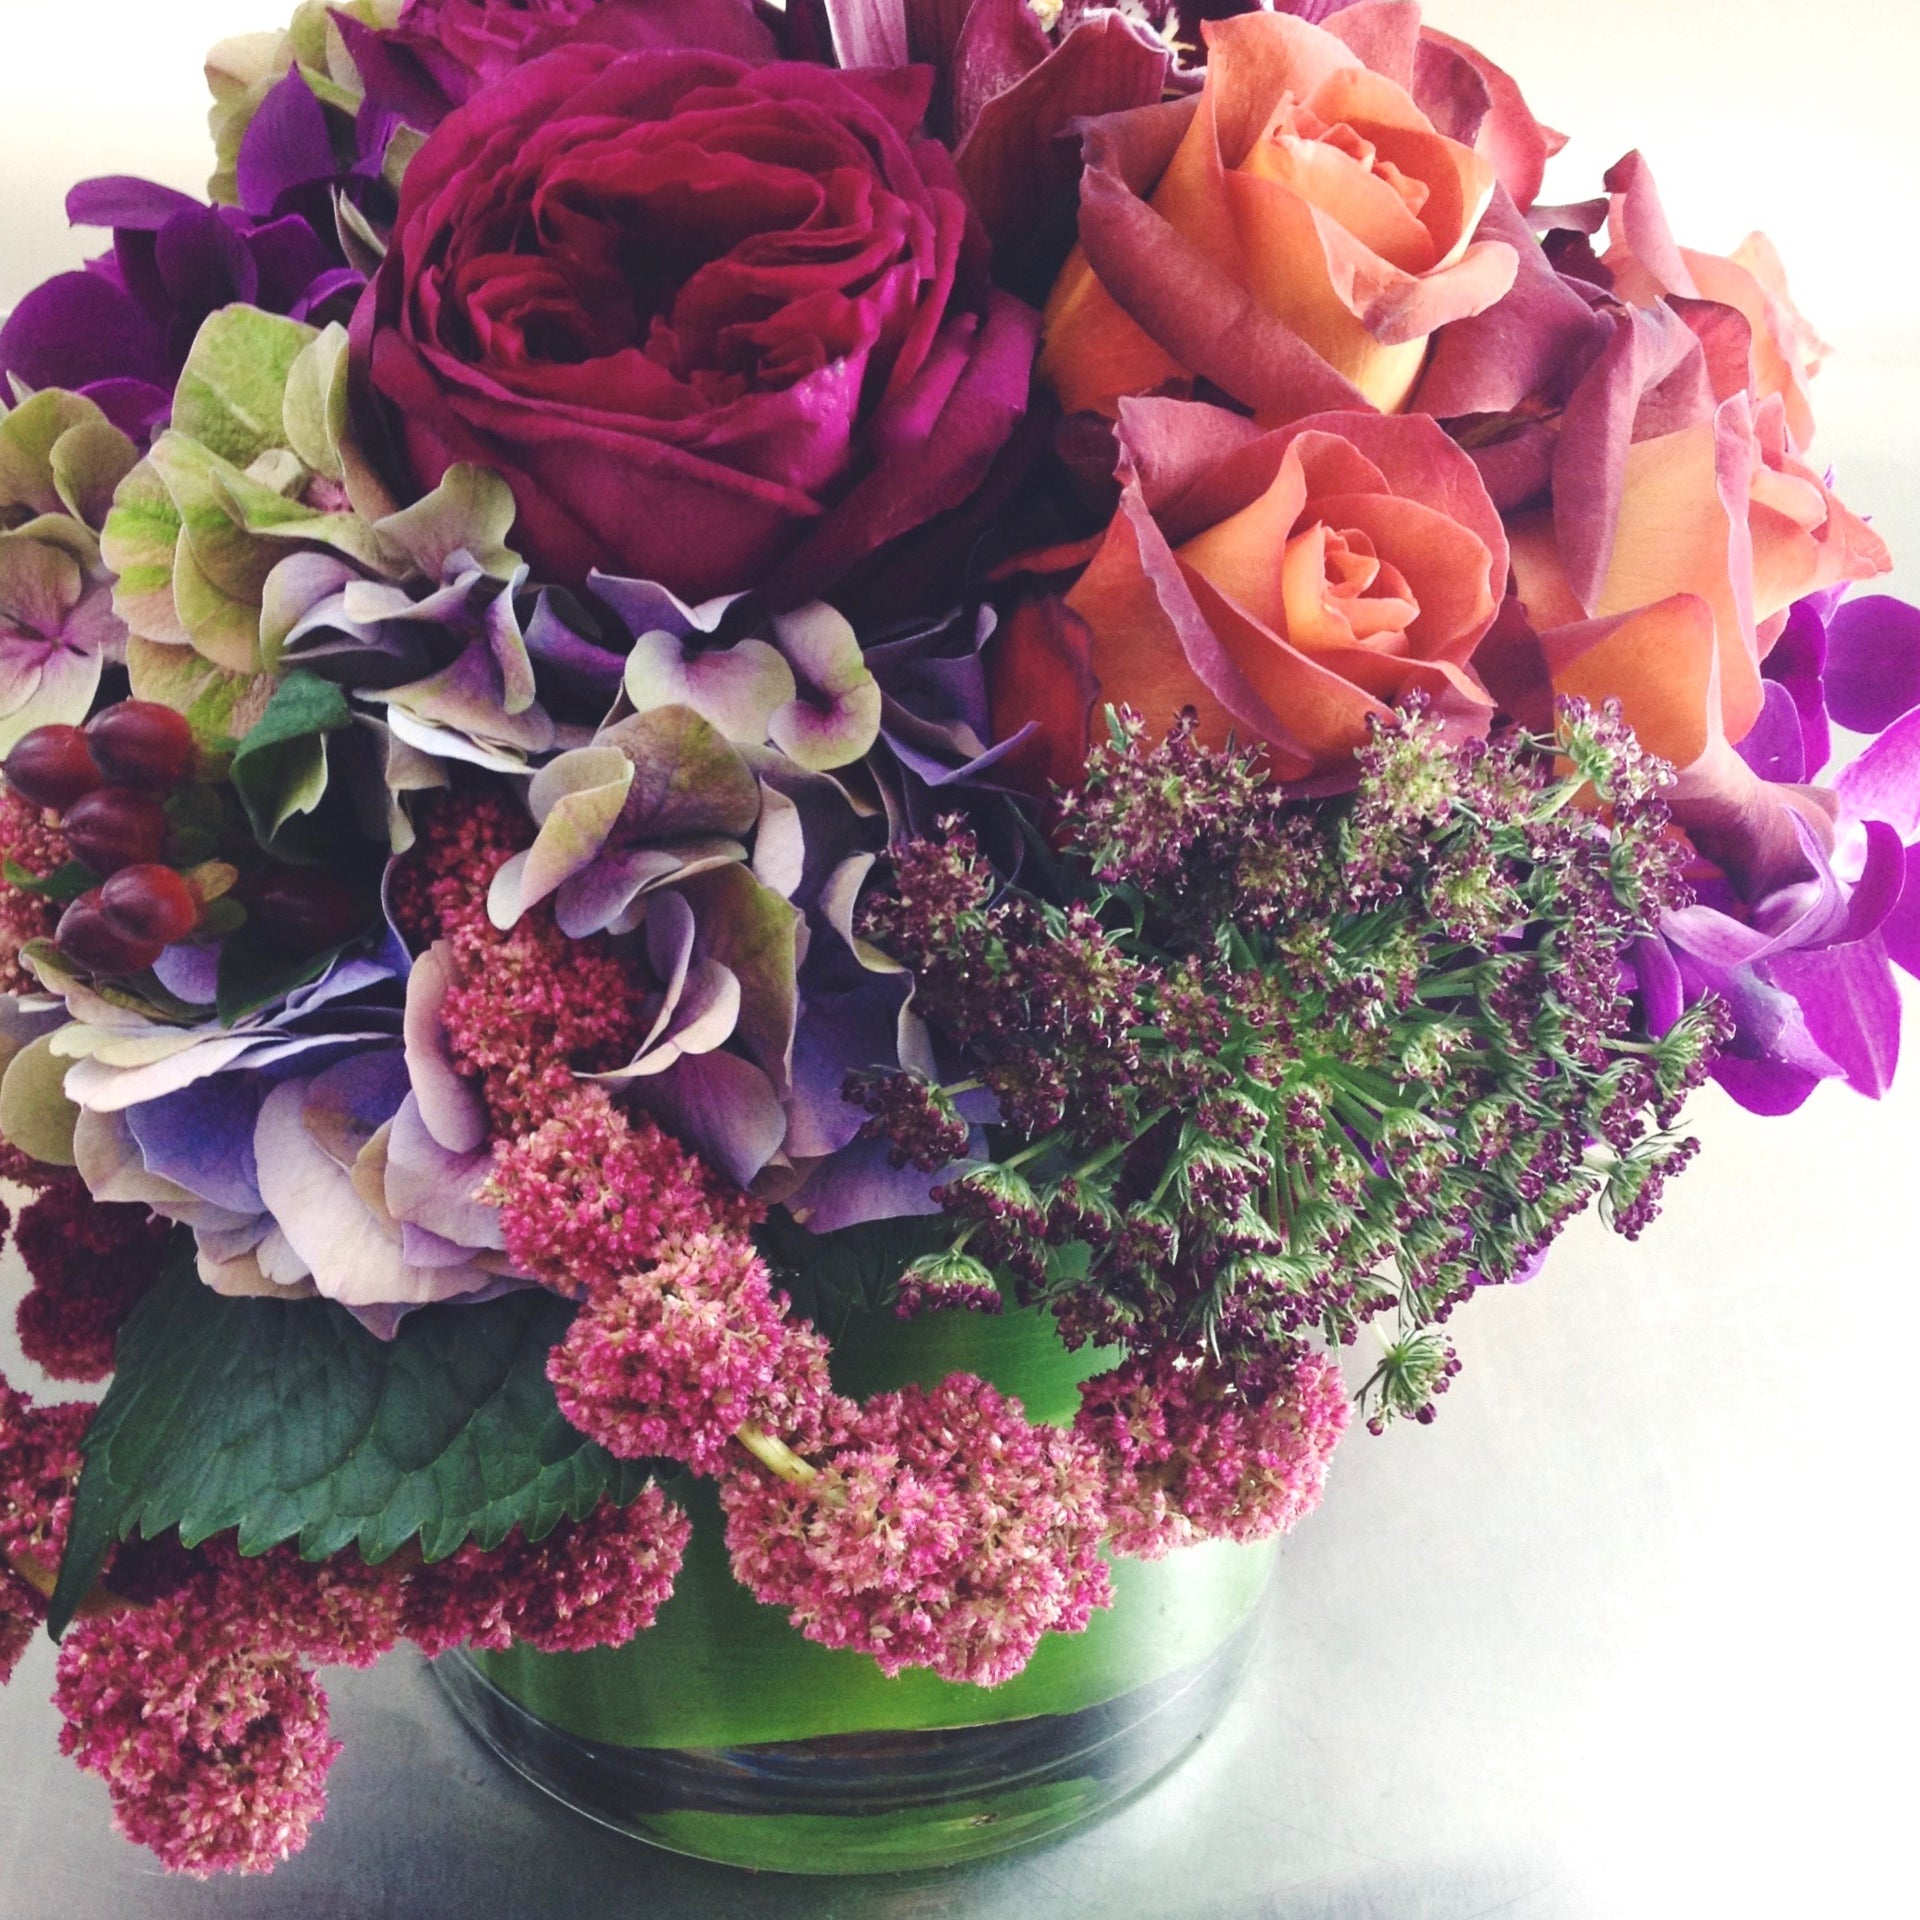 Fall arrangement using roses, berries, and amaranthus in a low glass vase.